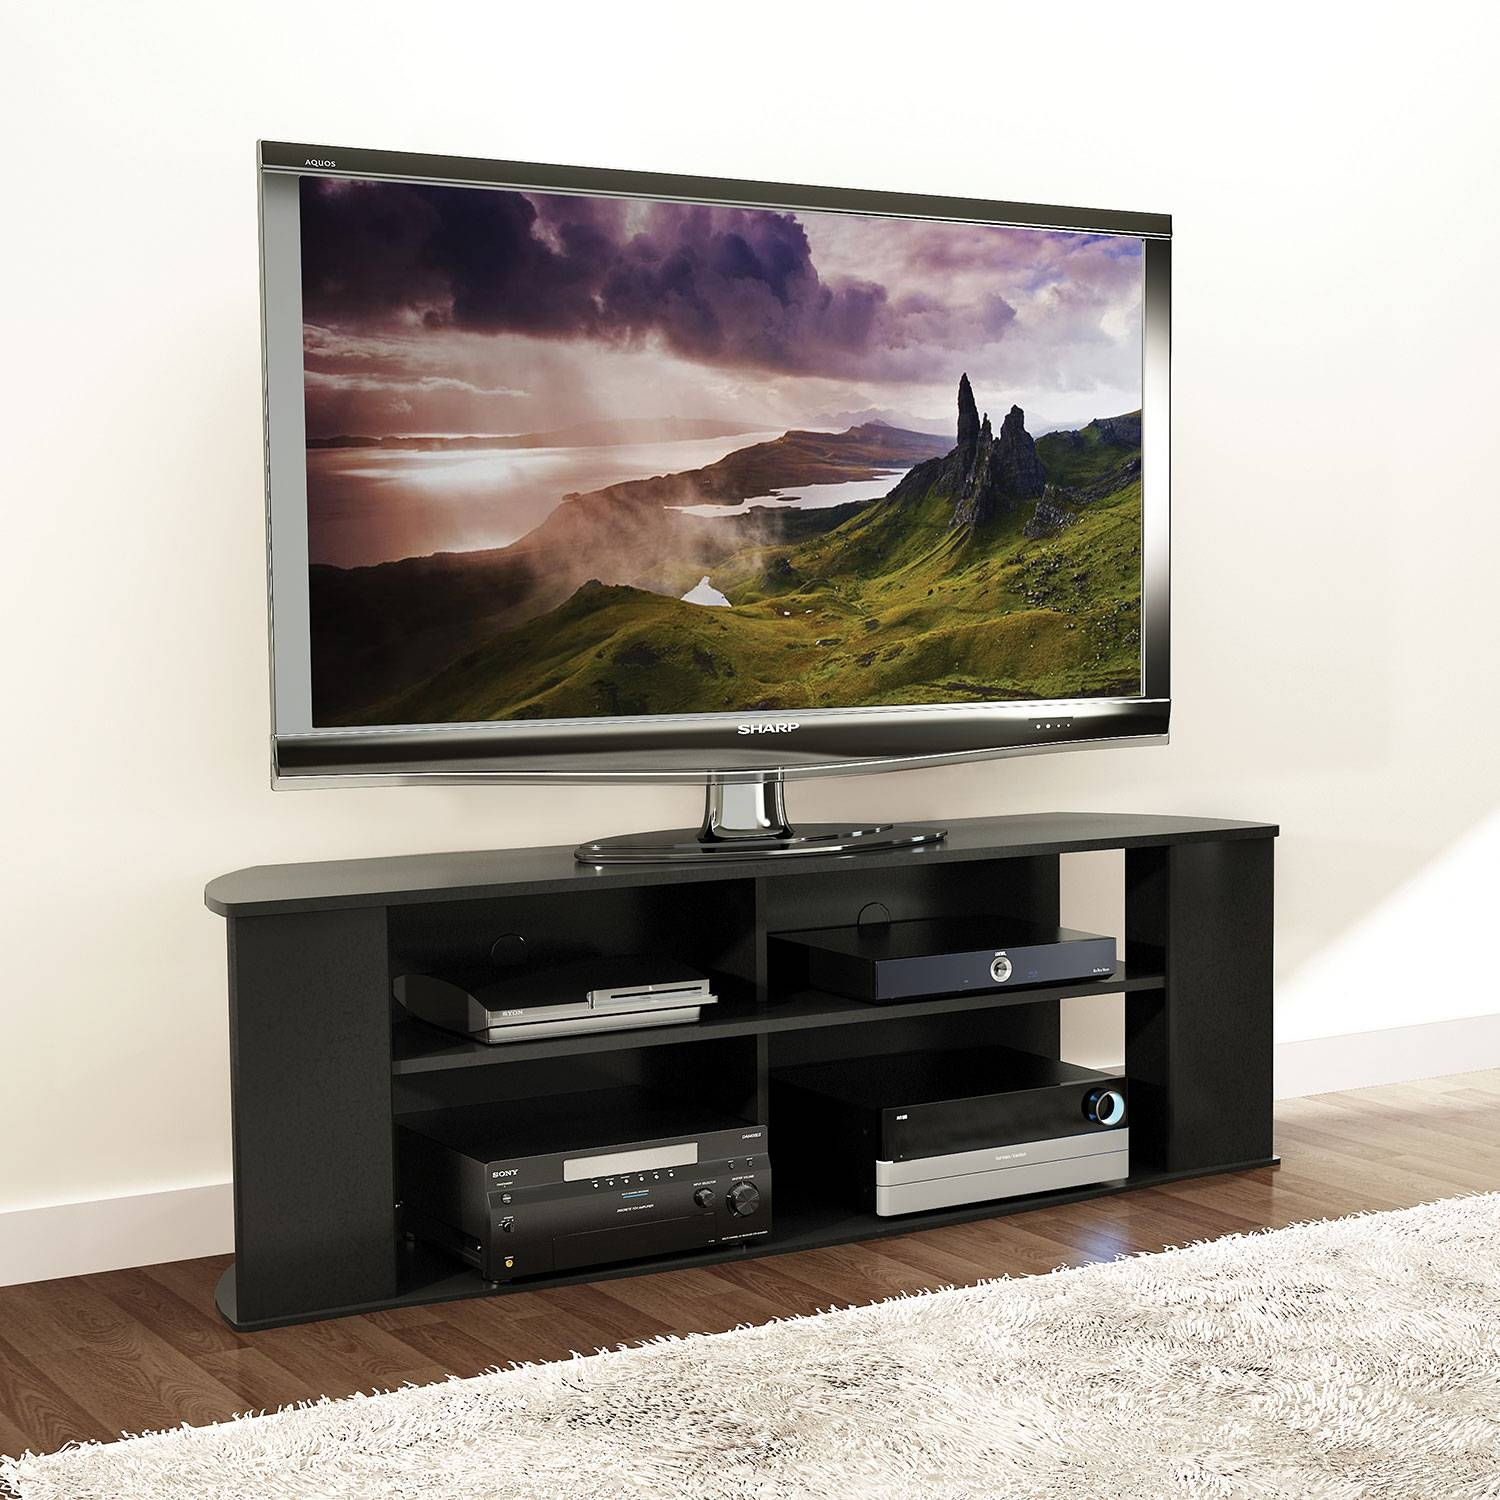 "Prefac Essentials 60"" Tv Stand - Black : Tv Stands - Best Buy Canada regarding Upright Tv Stands (Image 8 of 15)"